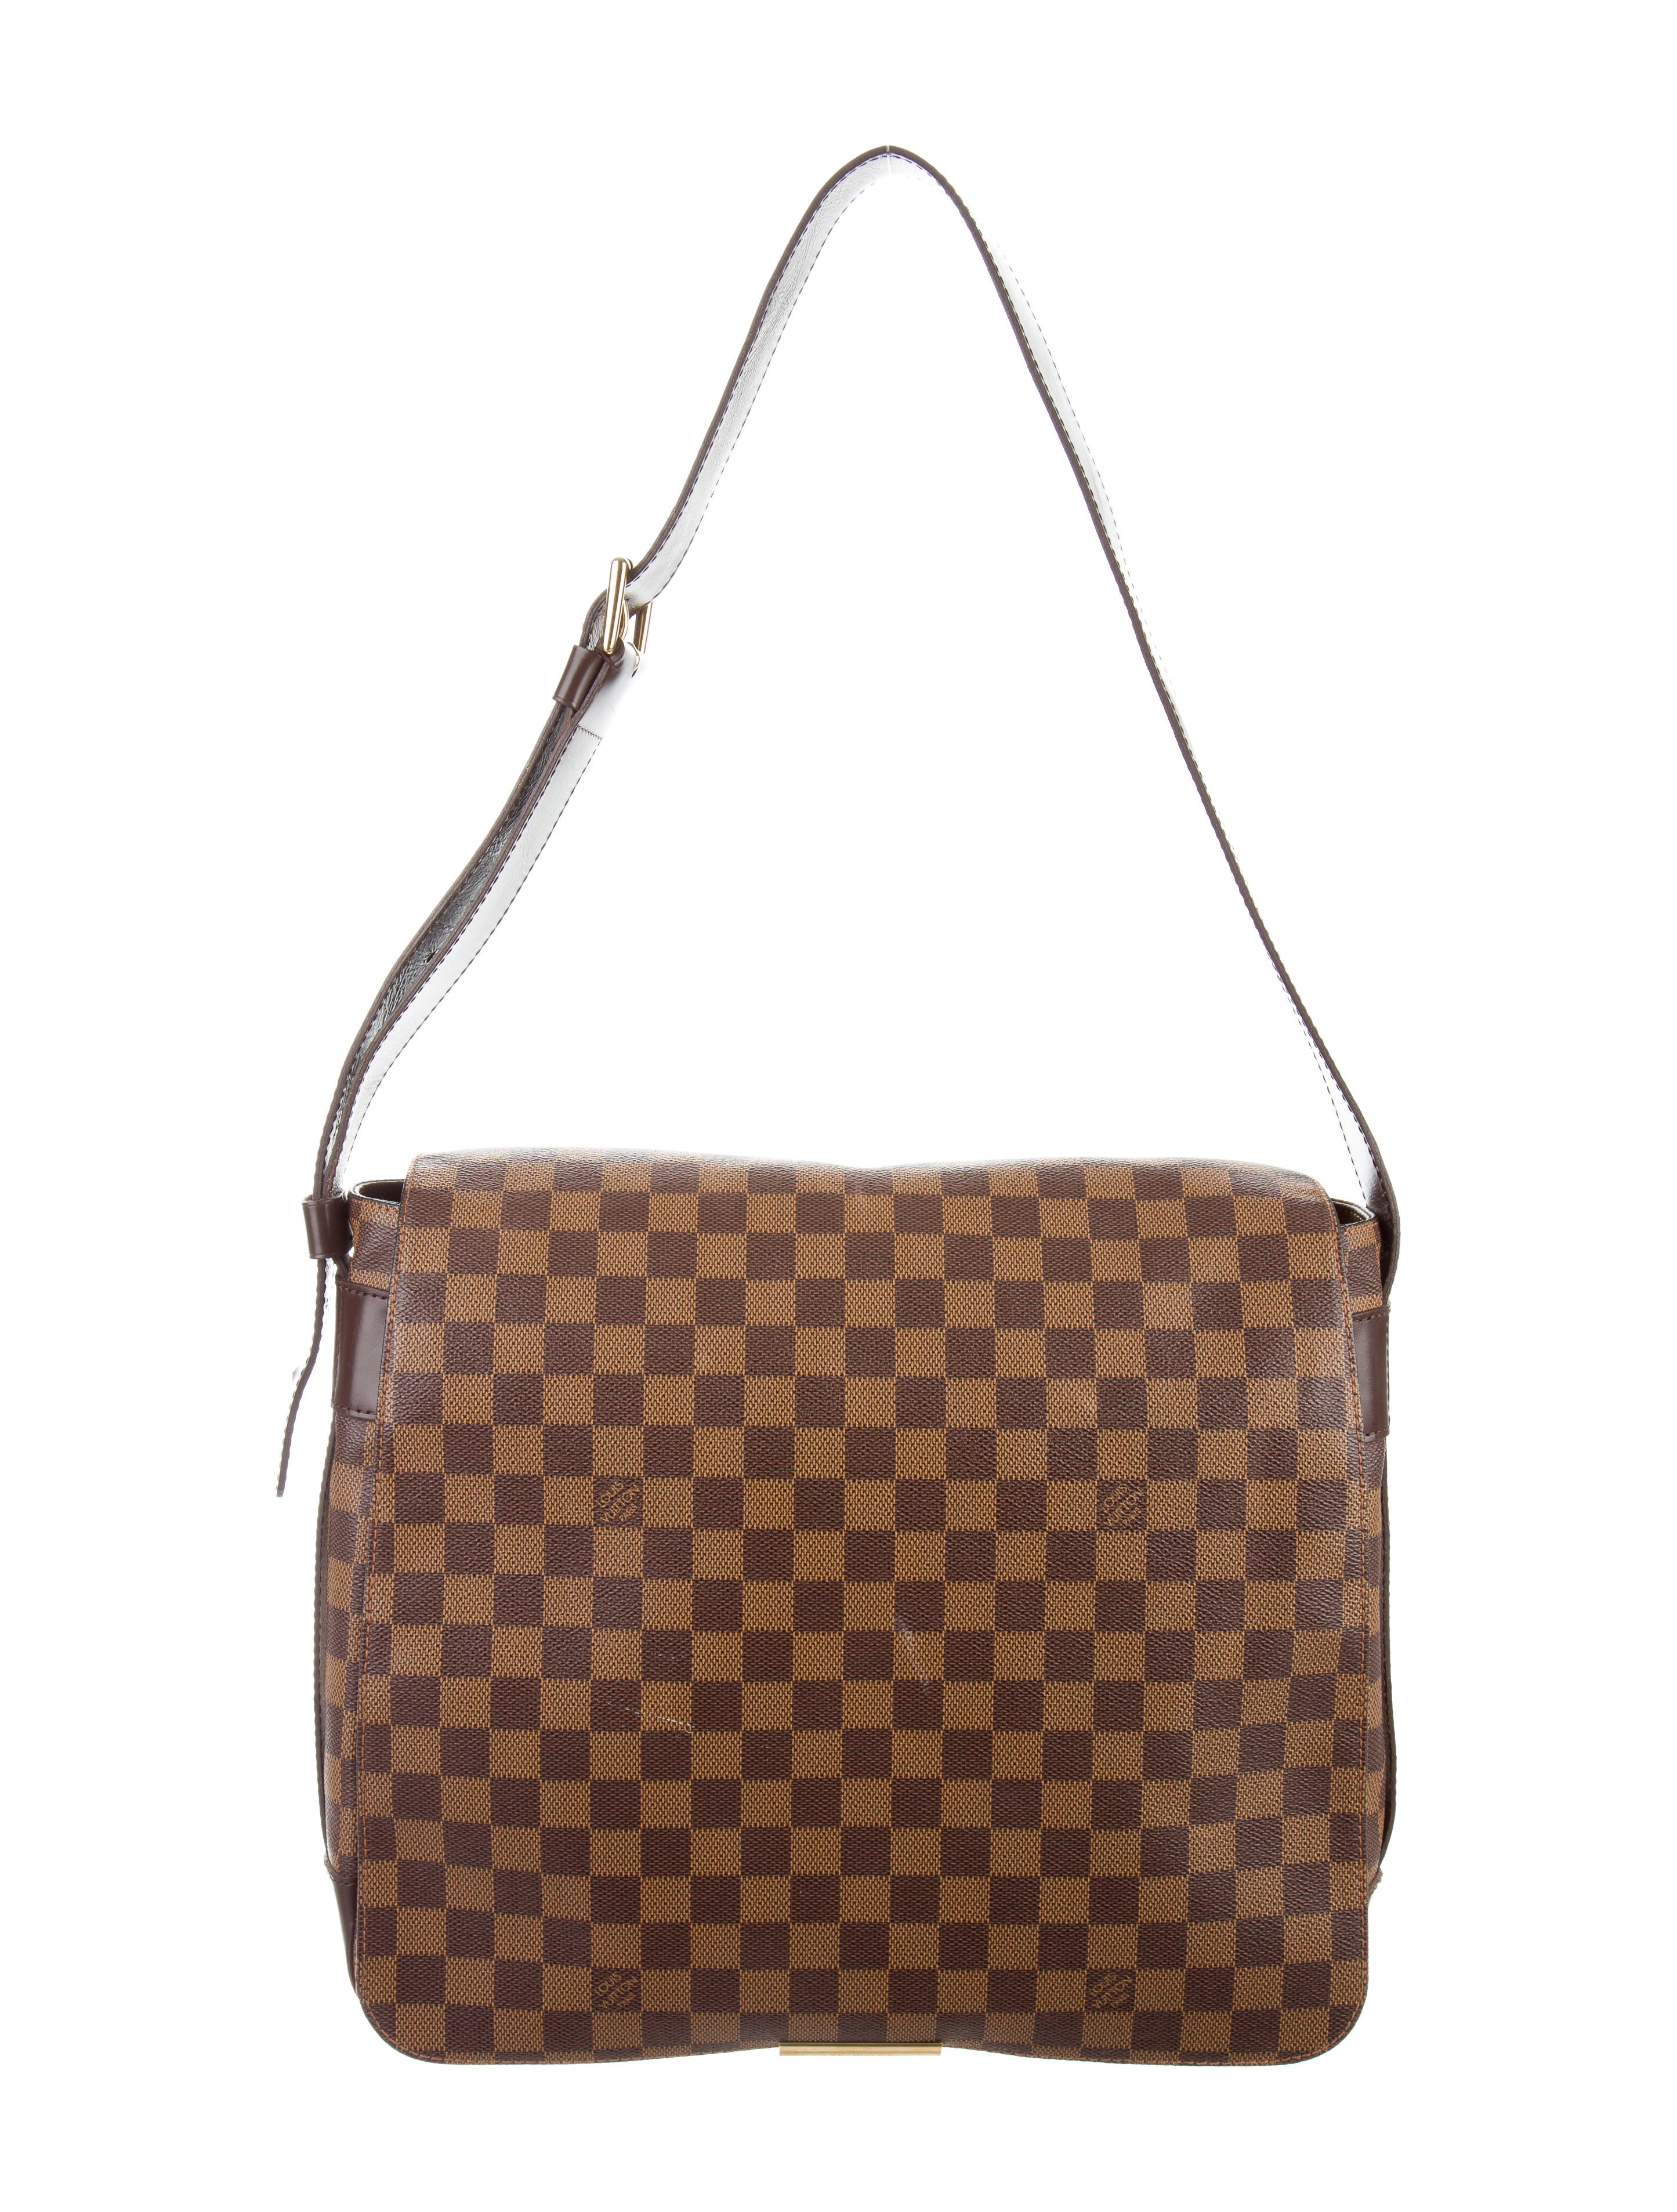 Original Louis Vuitton Messenger Bag LOUIS VUITTON Other In Leather - 1845433